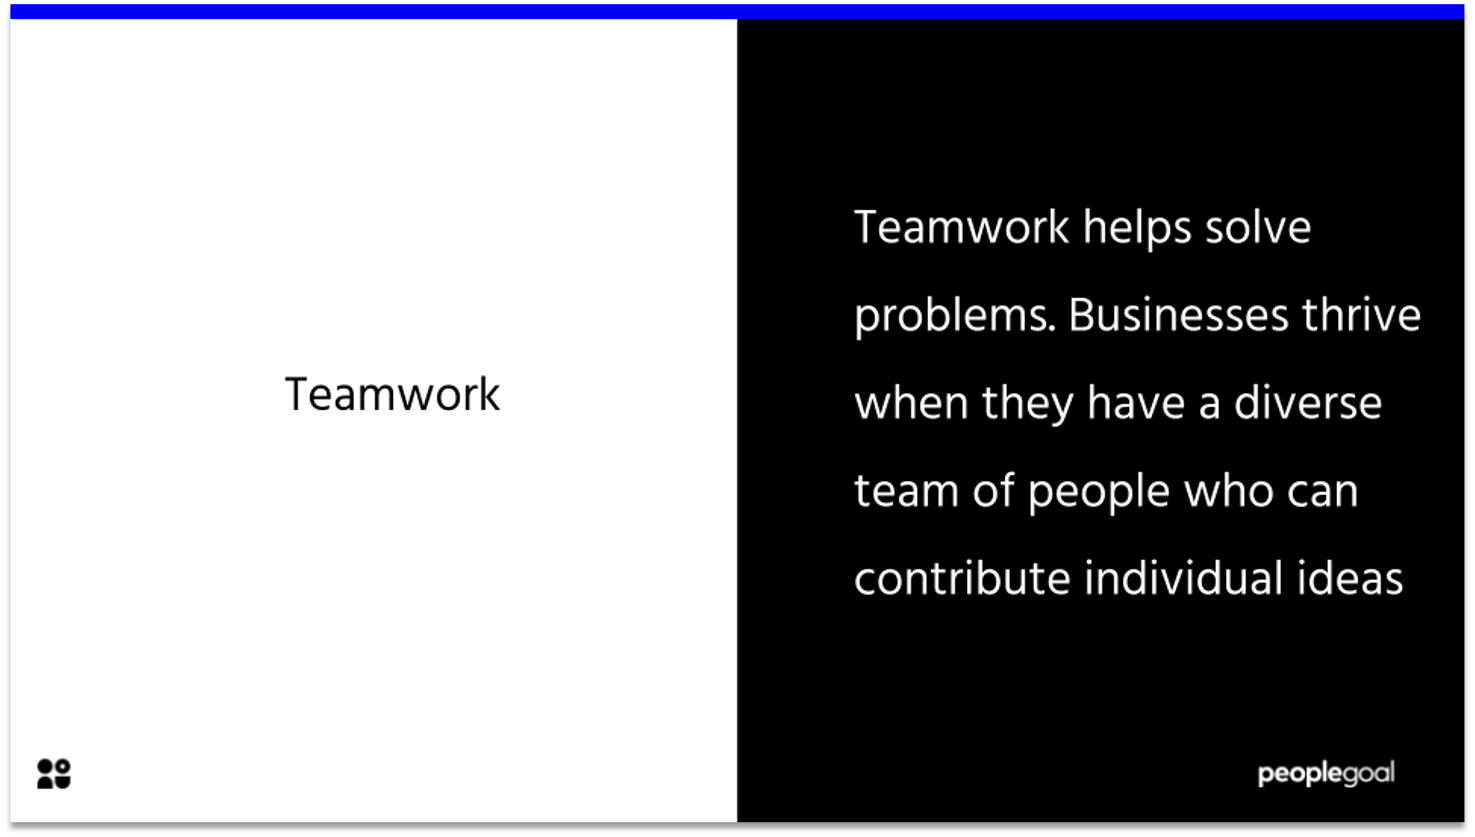 teamwork - manager comments for the next review cycle